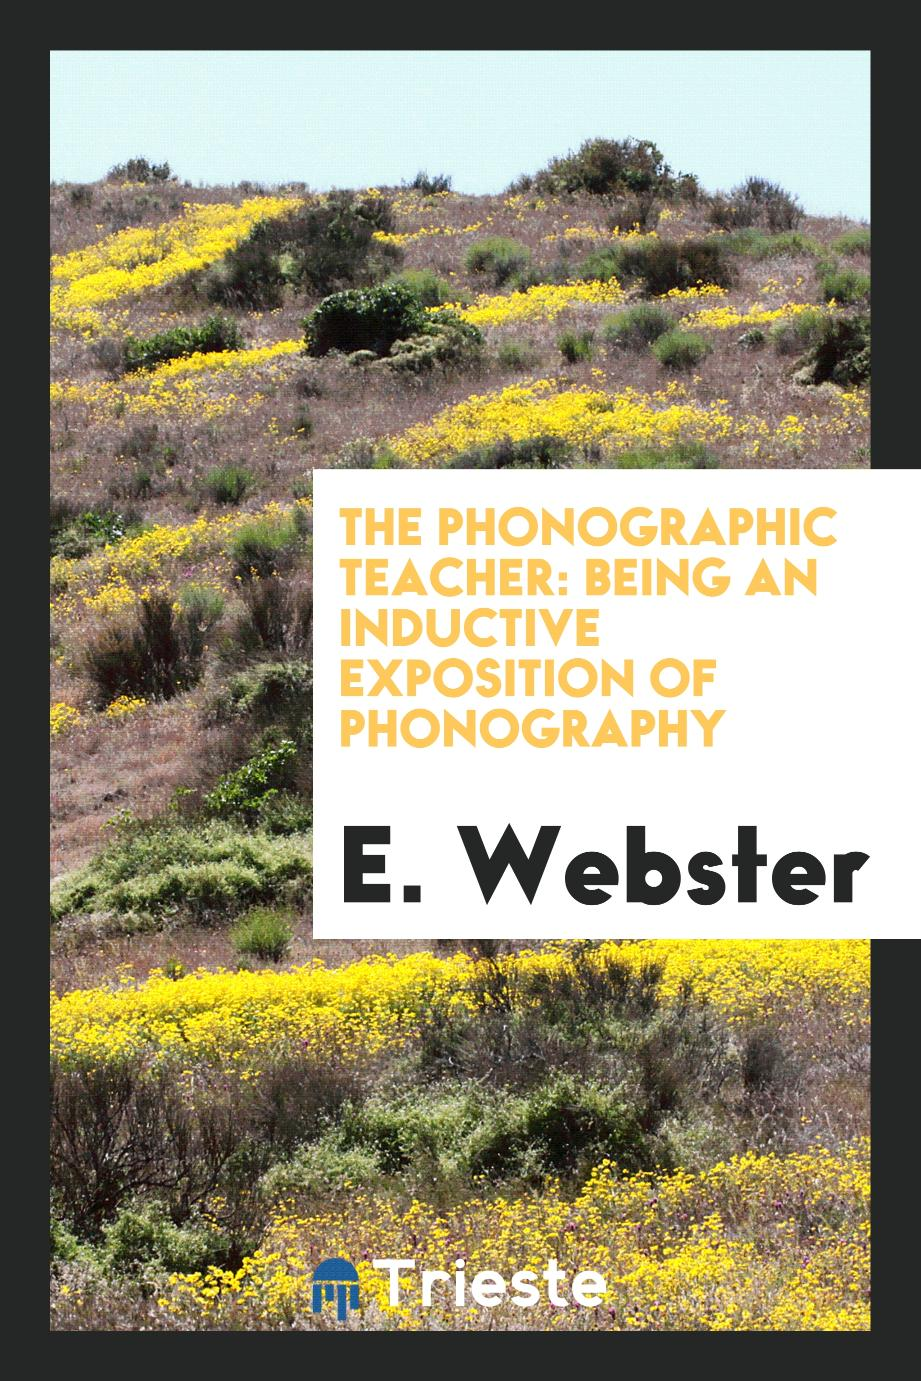 The Phonographic Teacher: Being an Inductive Exposition of Phonography